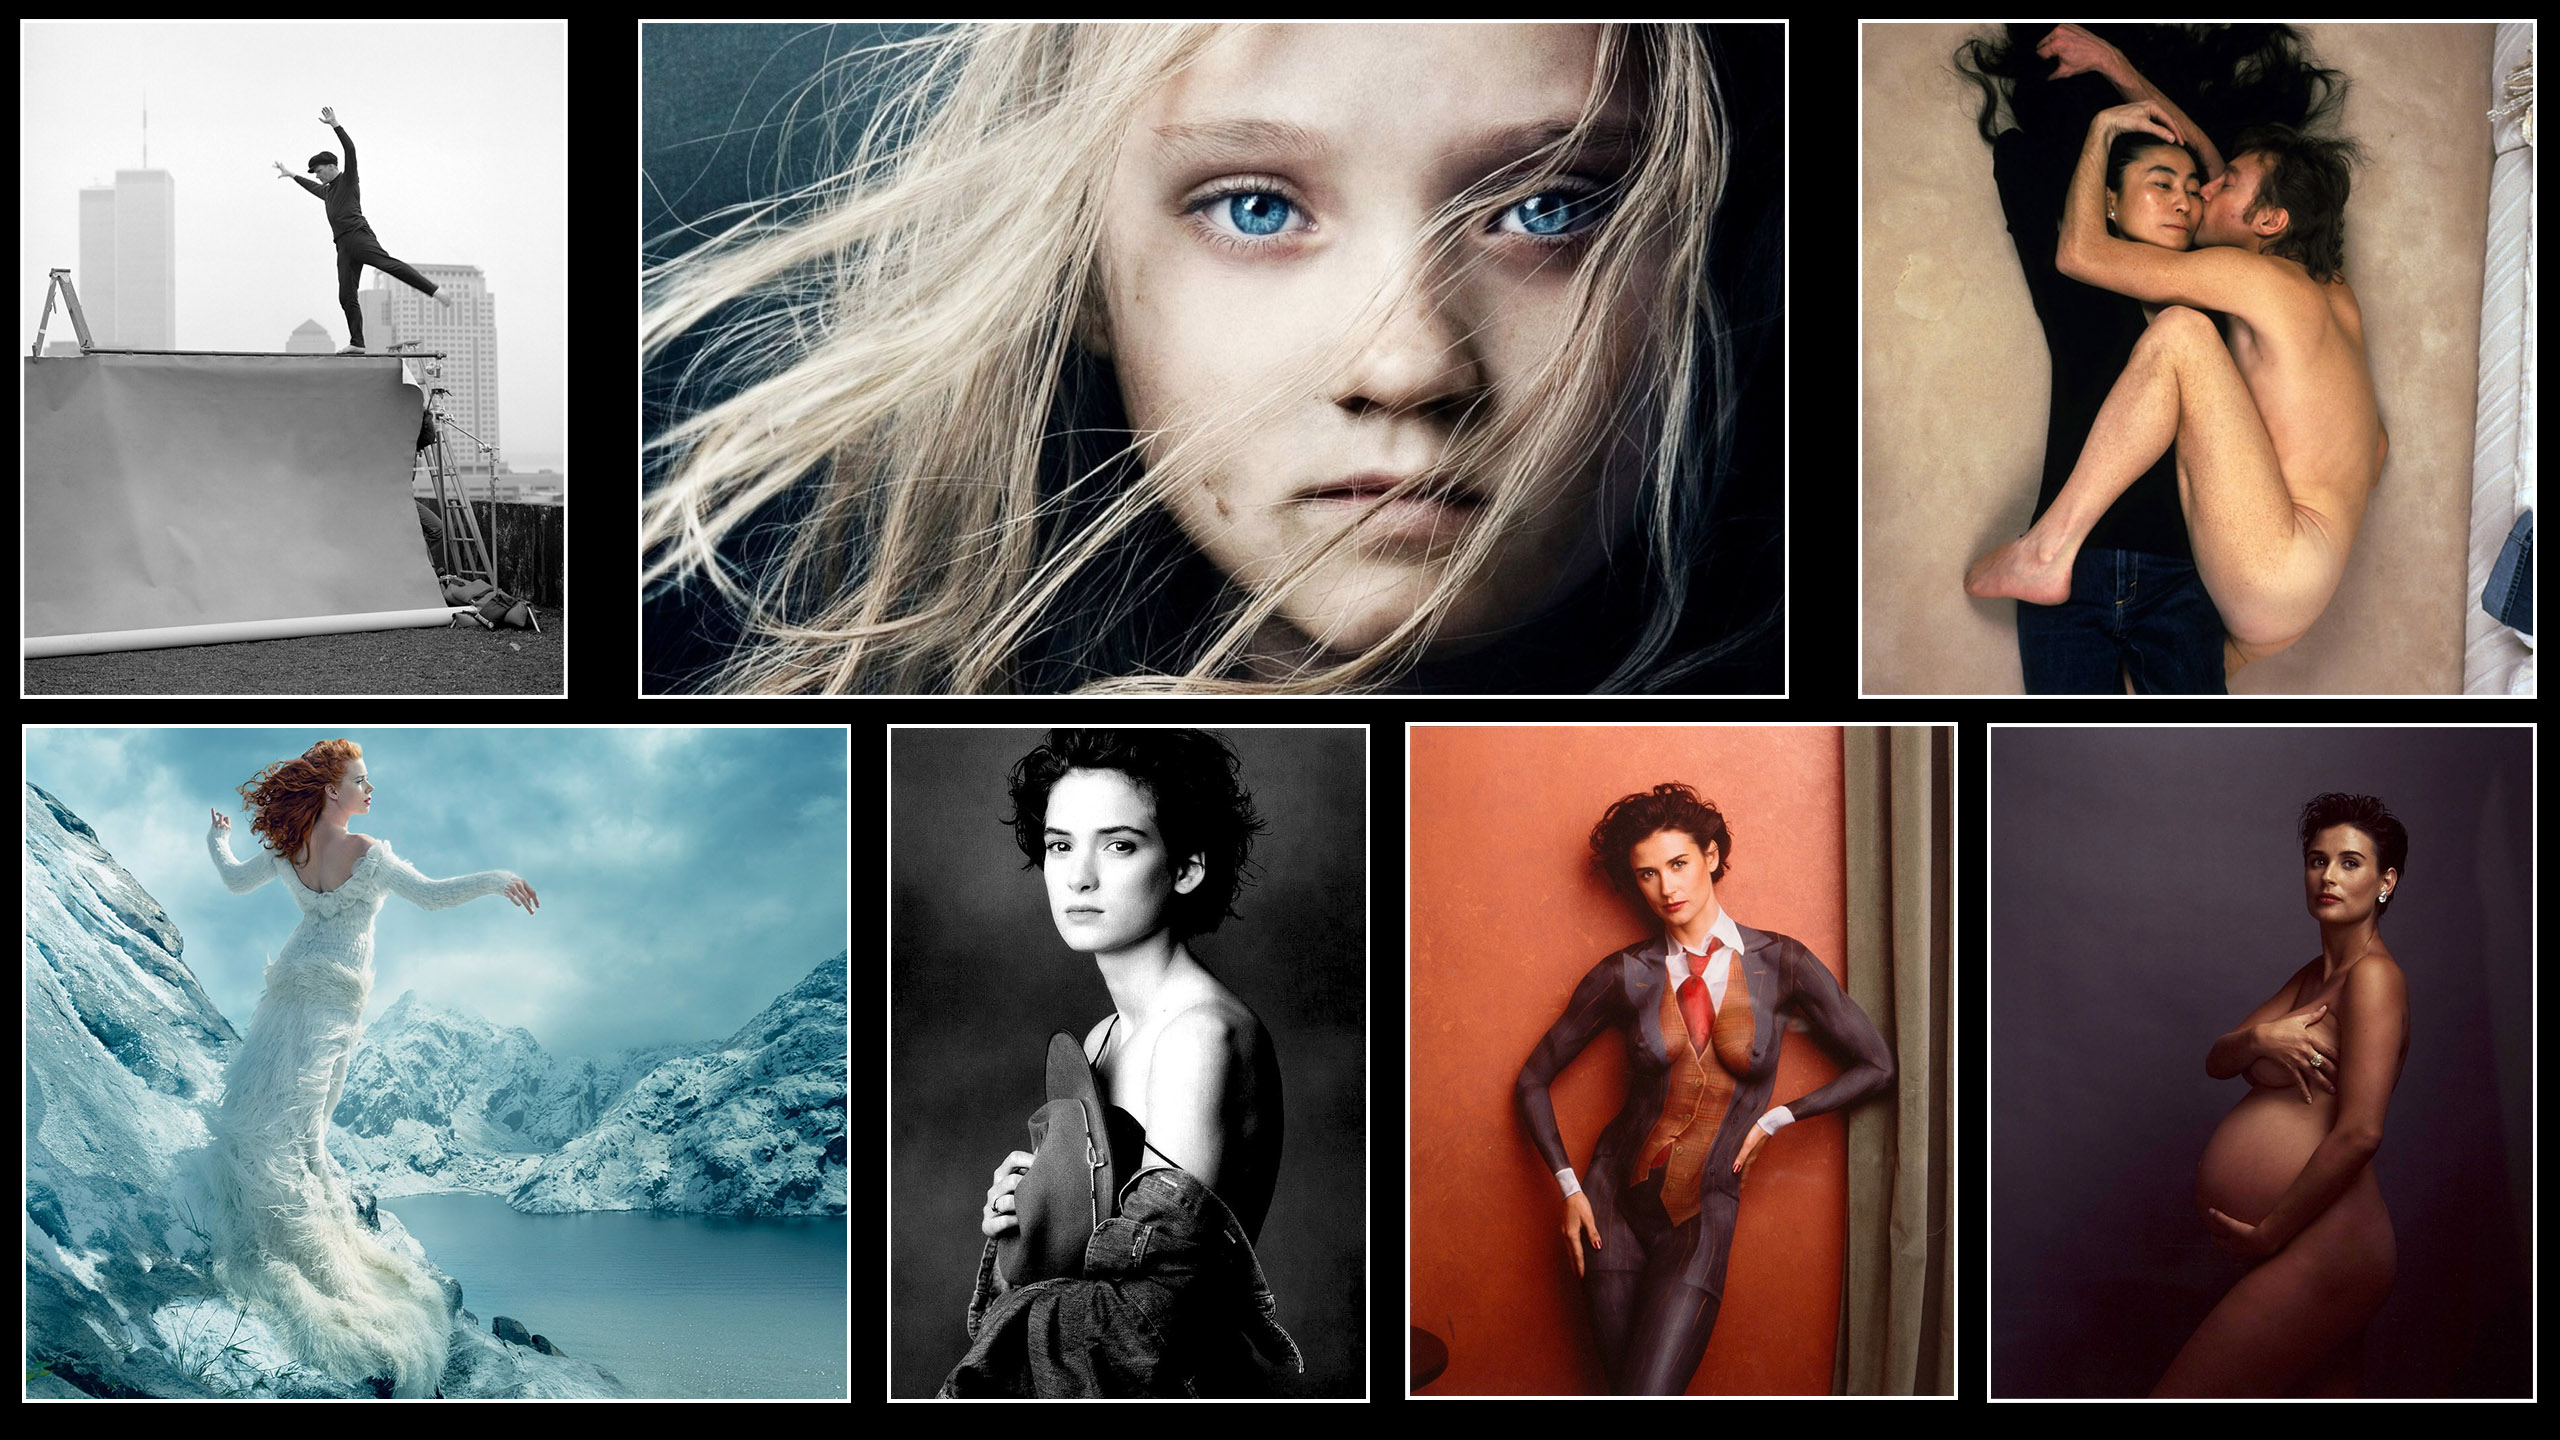 Historical women in photography - cover